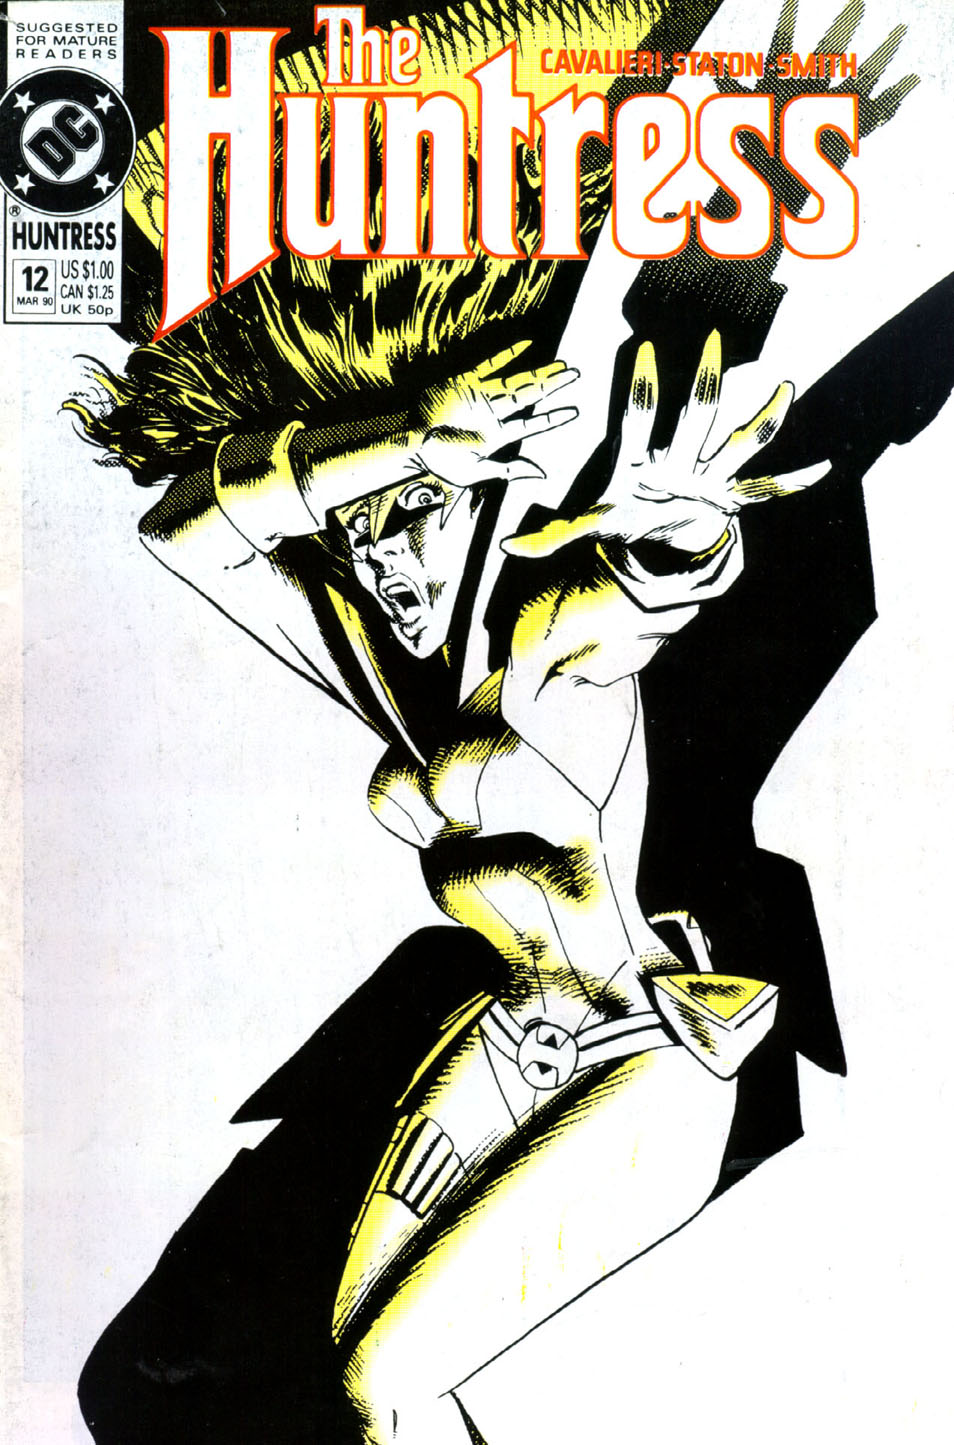 The Huntress (1989) #12, cover penciled by Joe Staton & inked by Bob Smith.